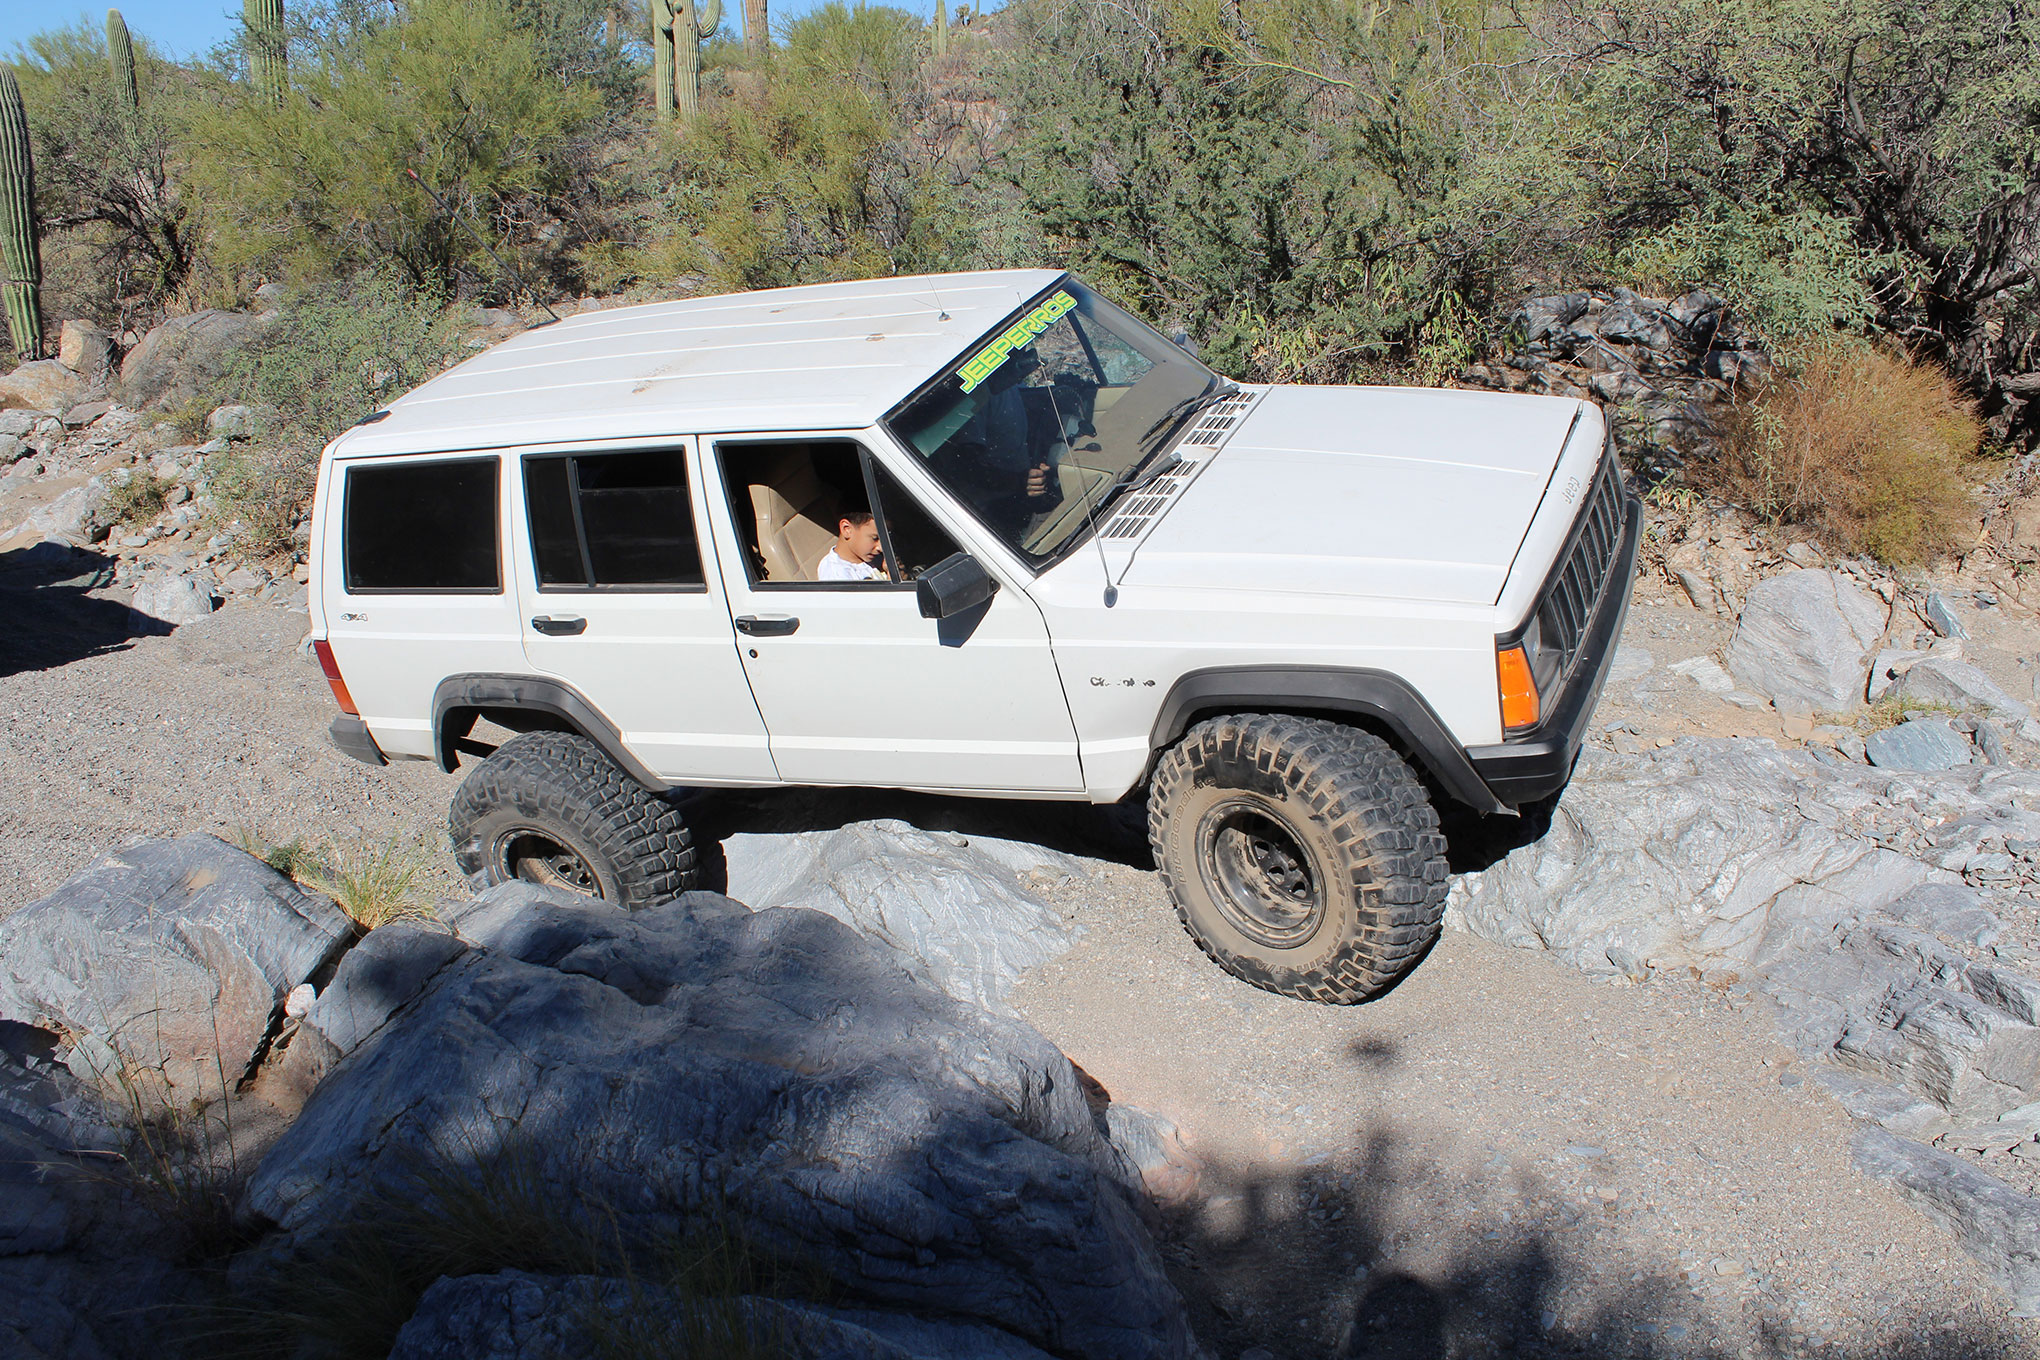 Nuts & Bolts: V-8 Transplant Into an XJ